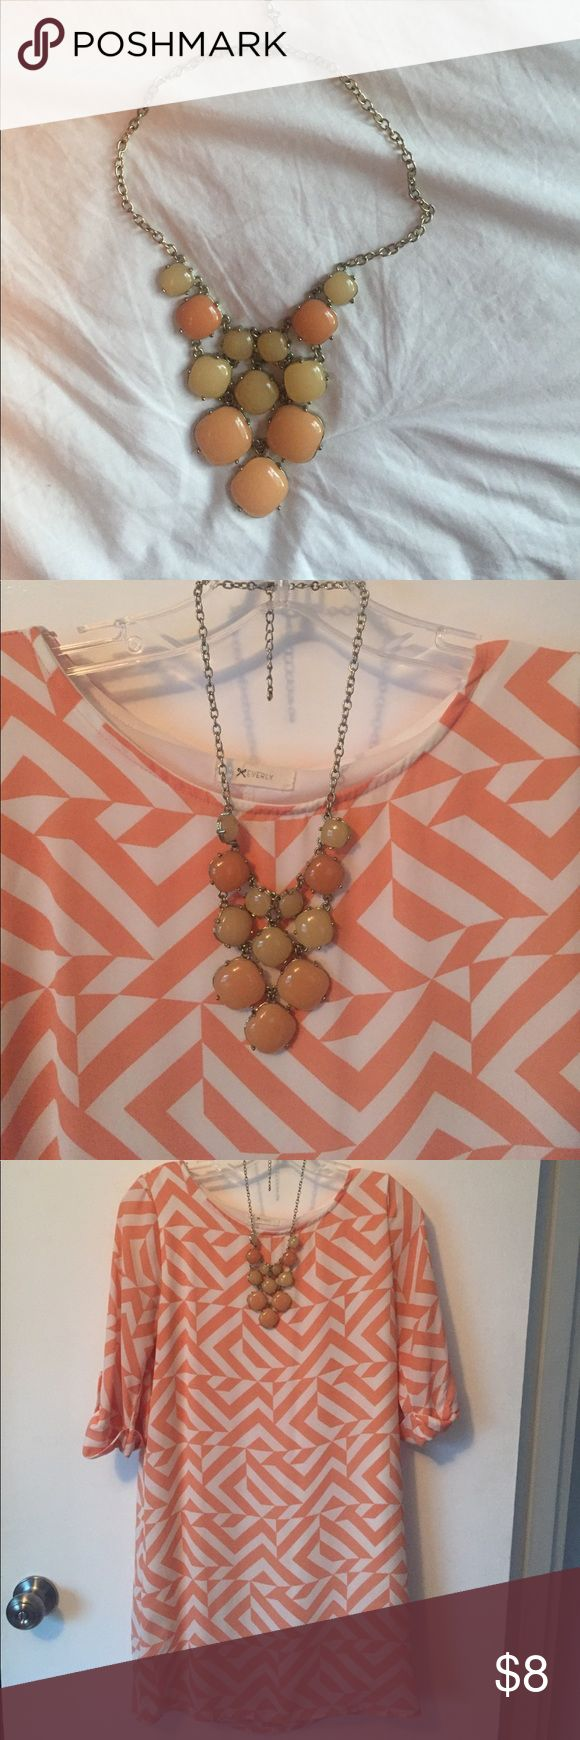 Coral bubble necklace Coral bubble necklace. Good condition! Would look great with the coral chevron dress if you choose to bundle. Jewelry Necklaces